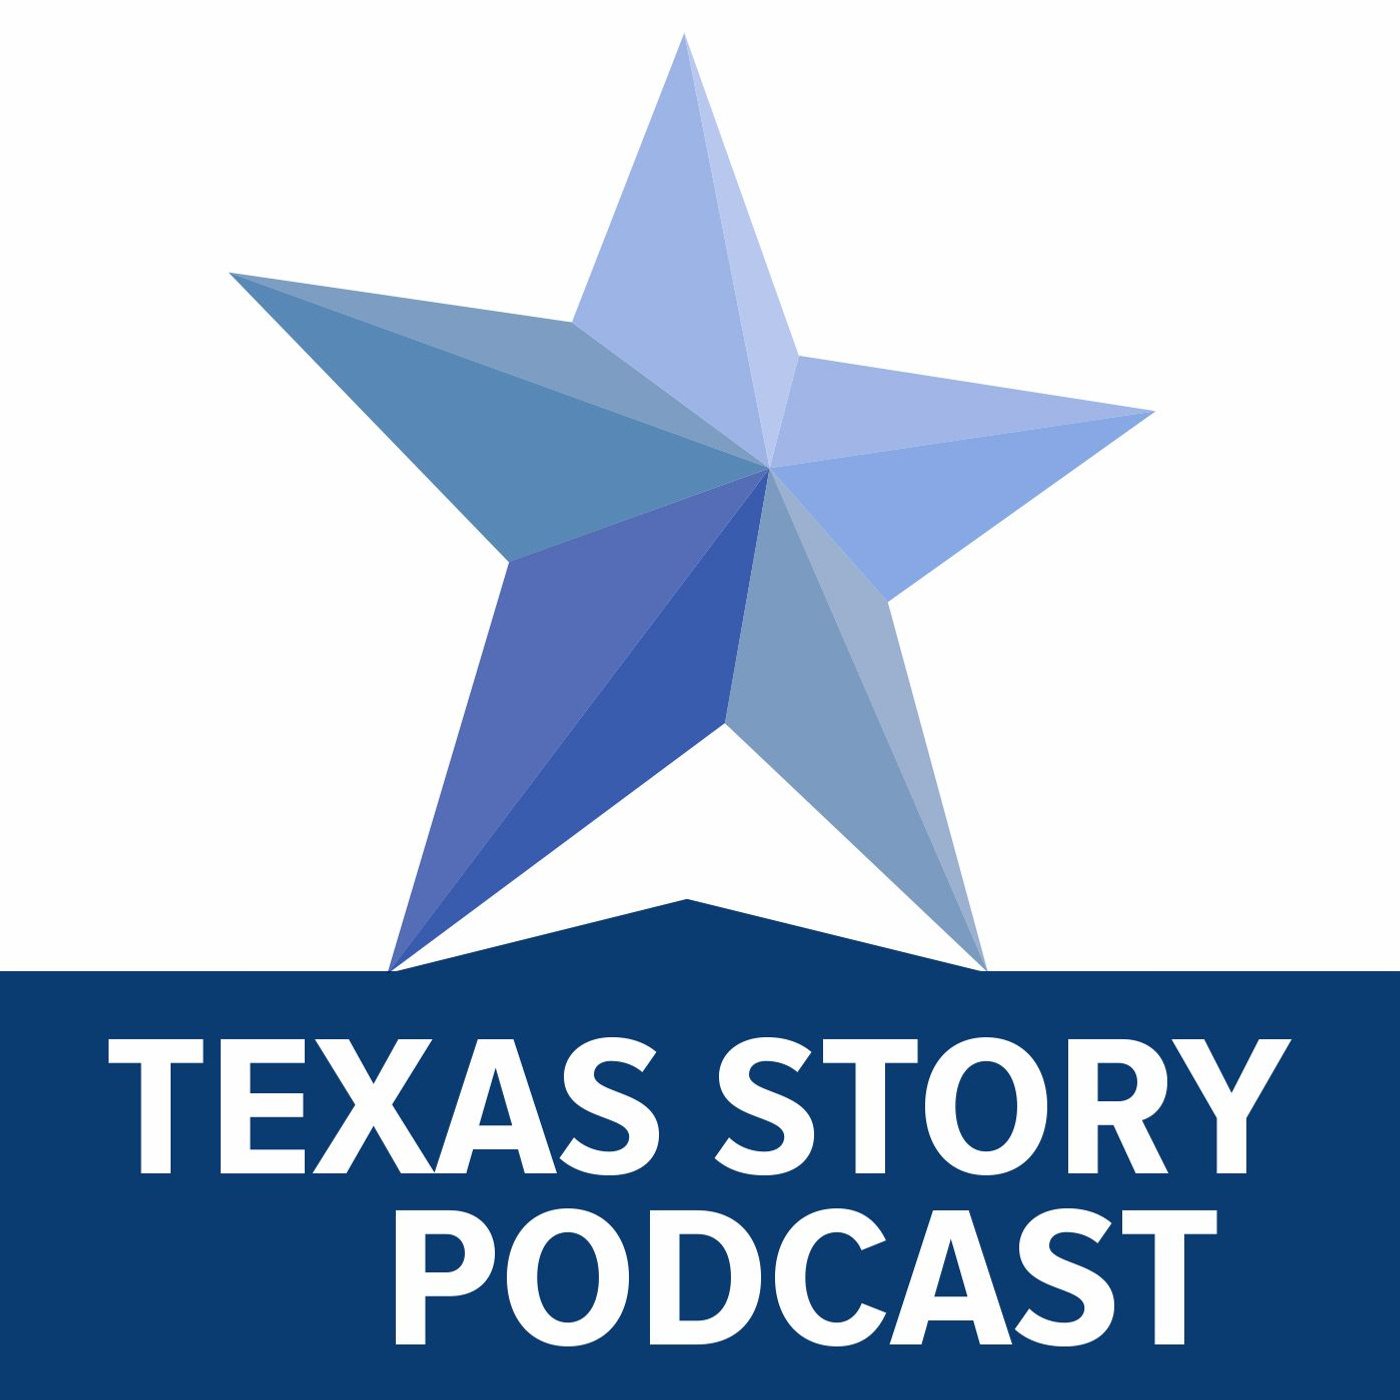 Episode 4 // Stevie Ray Vaughan: A Texas Story Podcast